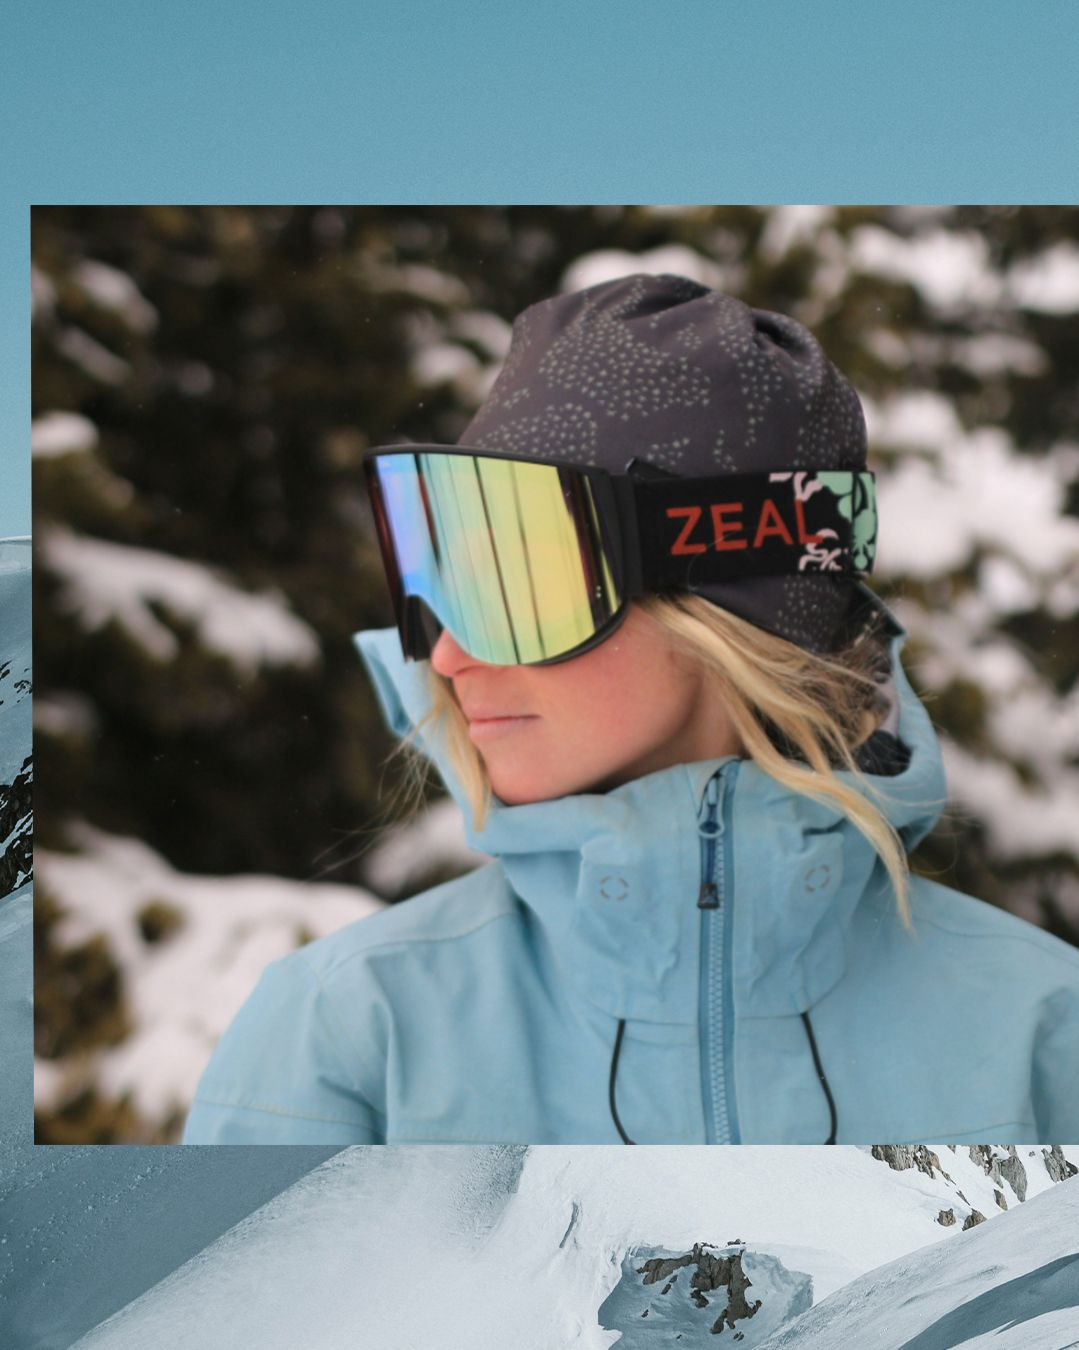 Pin By Zeal Optics On Goggles Goggles Sunglasses Polarized Sunglasses